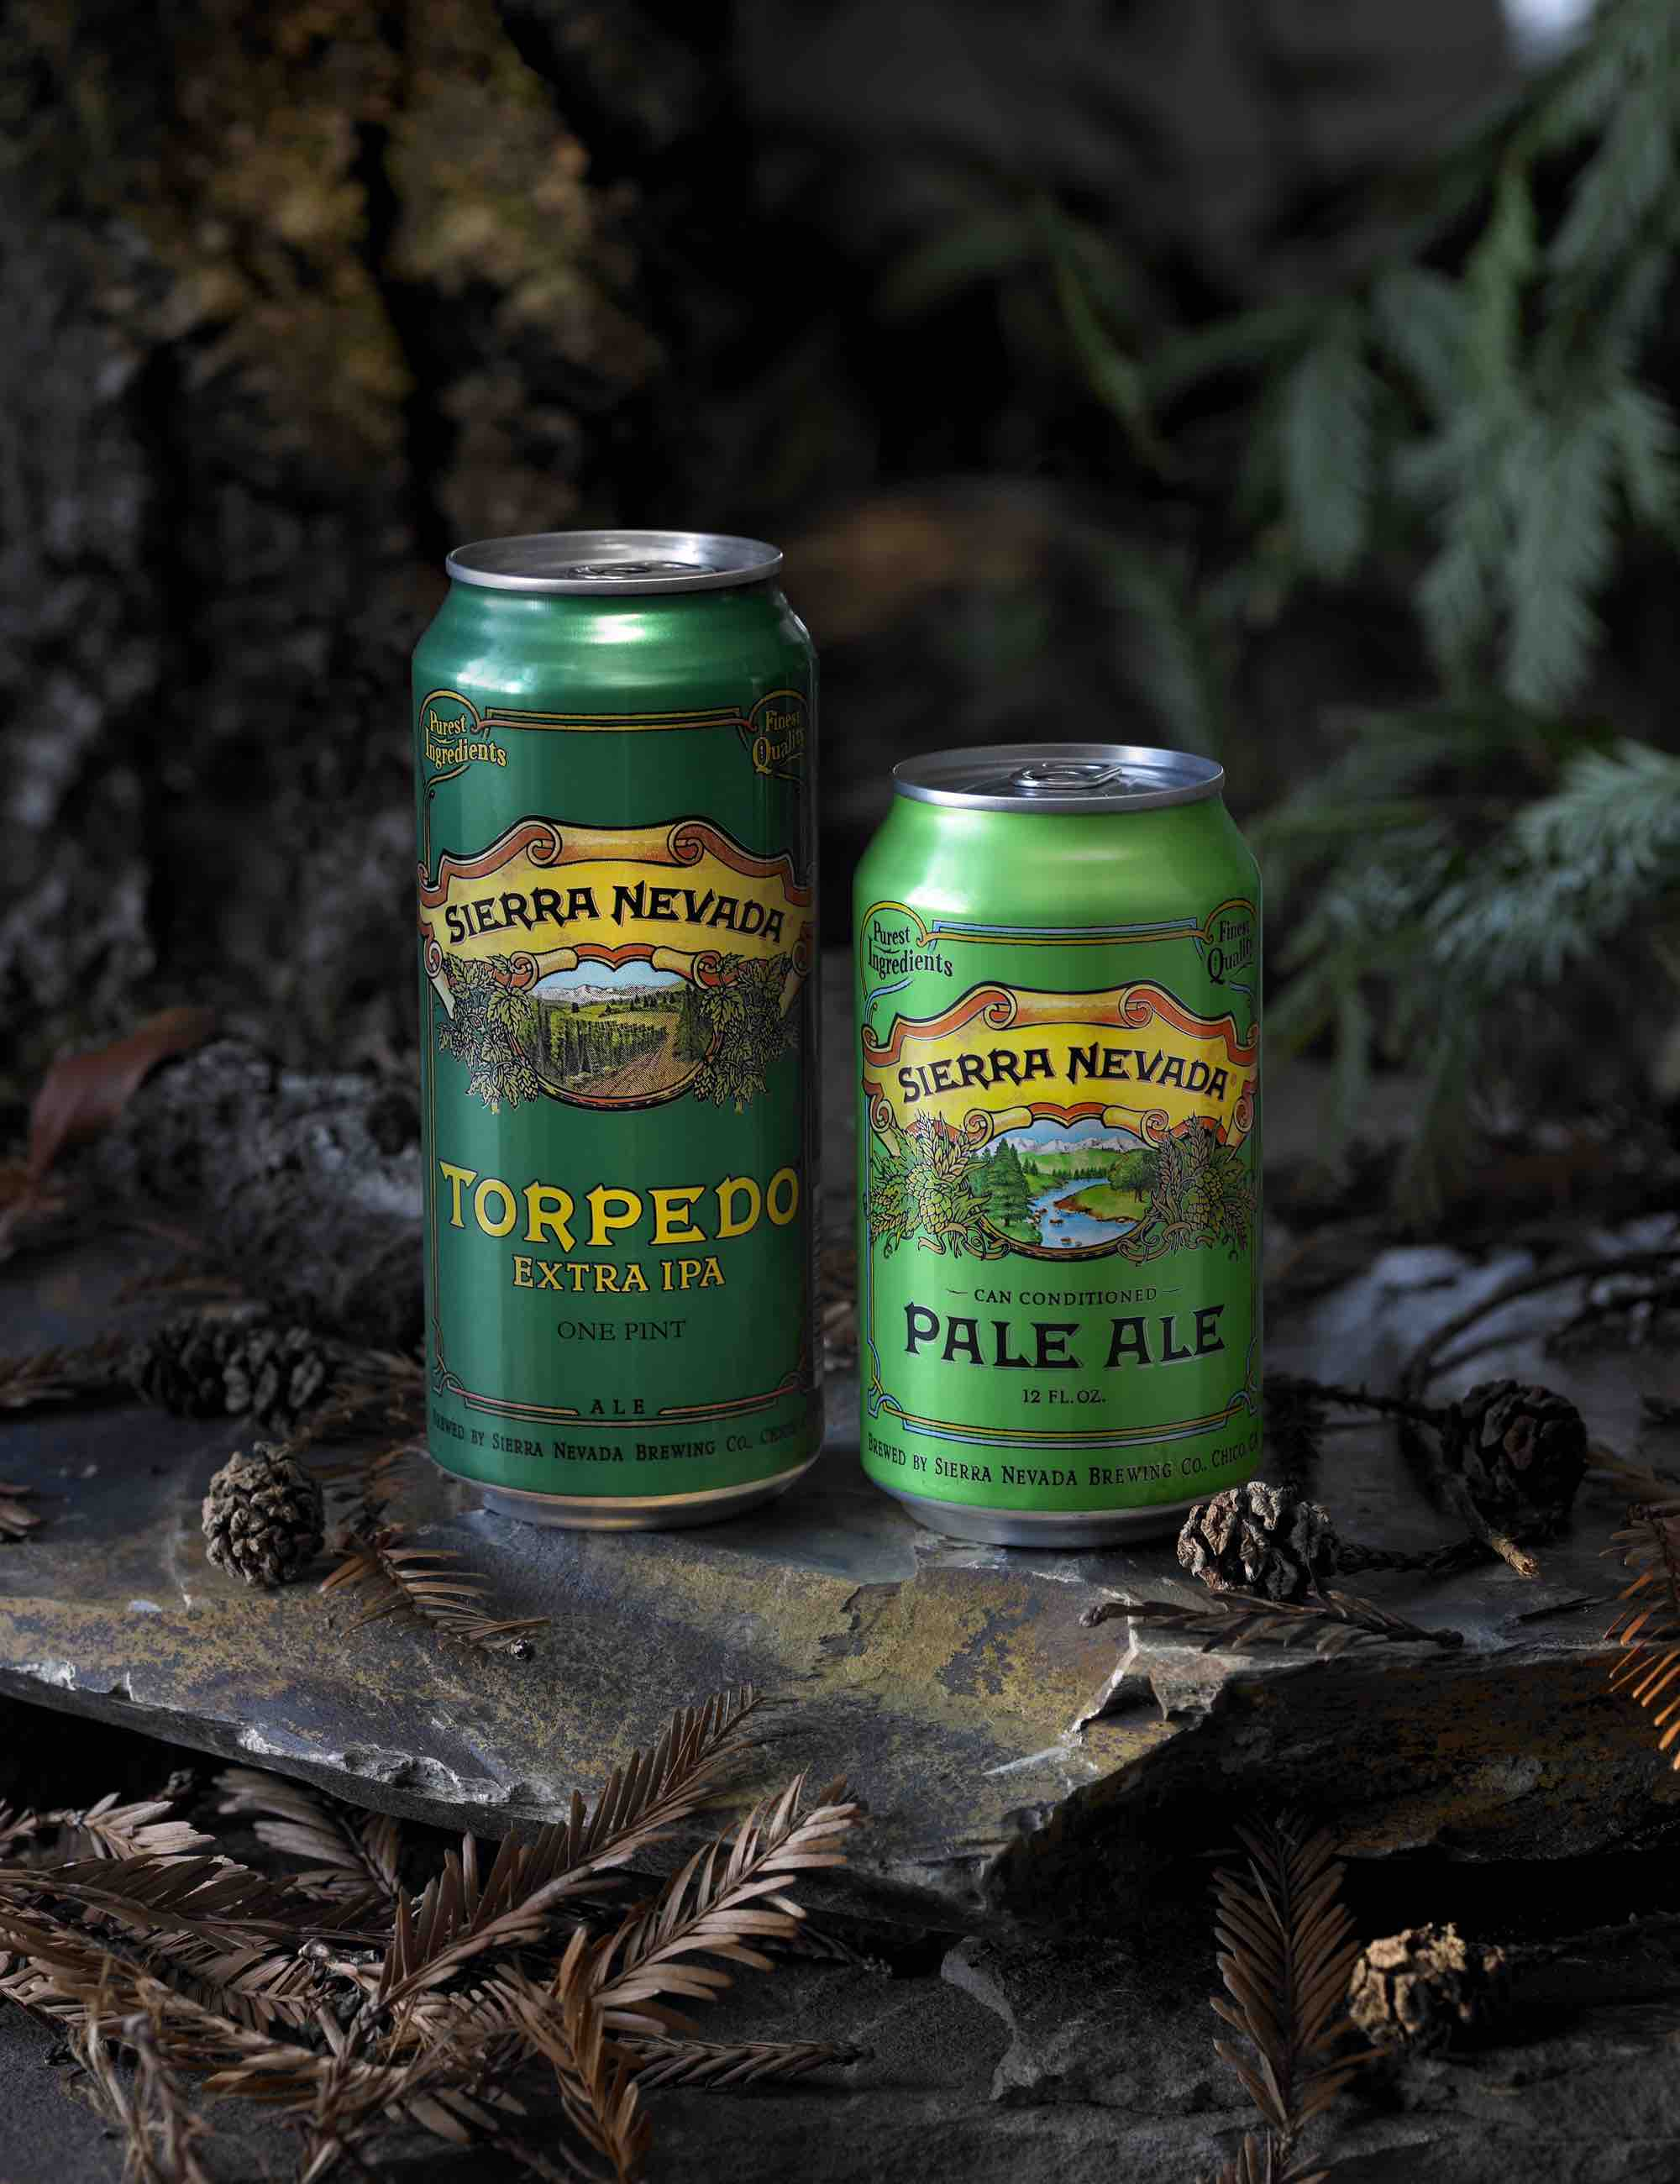 Sierra Nevada Brewing Co. offers some of its beers in 16- and 12-ounce cans, which are more environmentally friendly and preserve beer quality better than bottles.